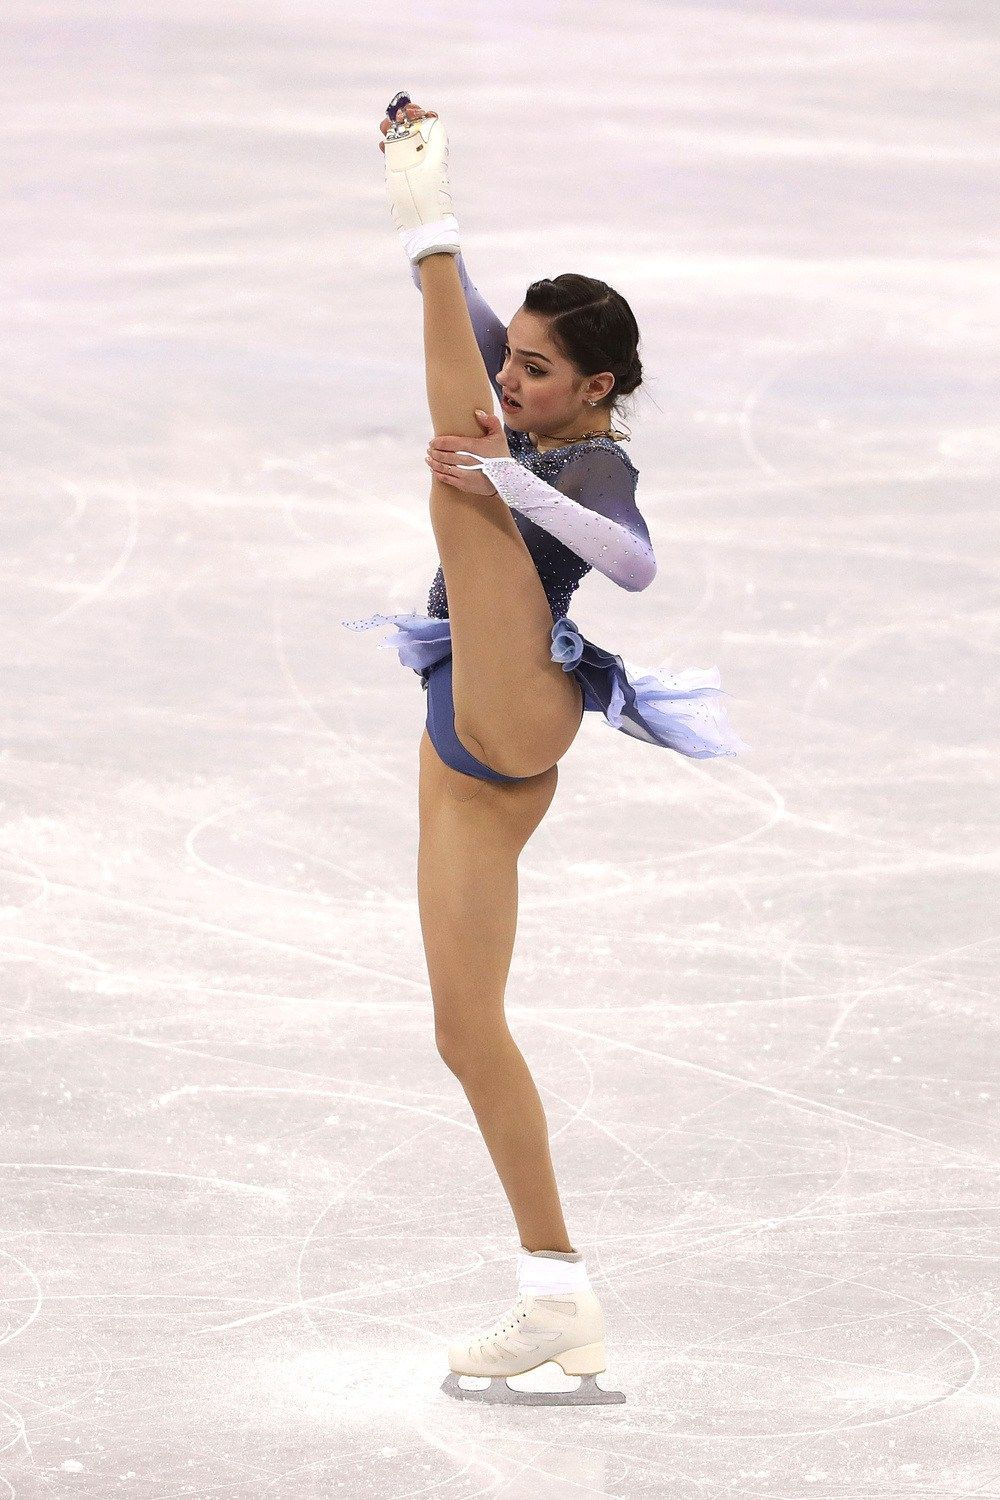 Sexy picture female ice skater